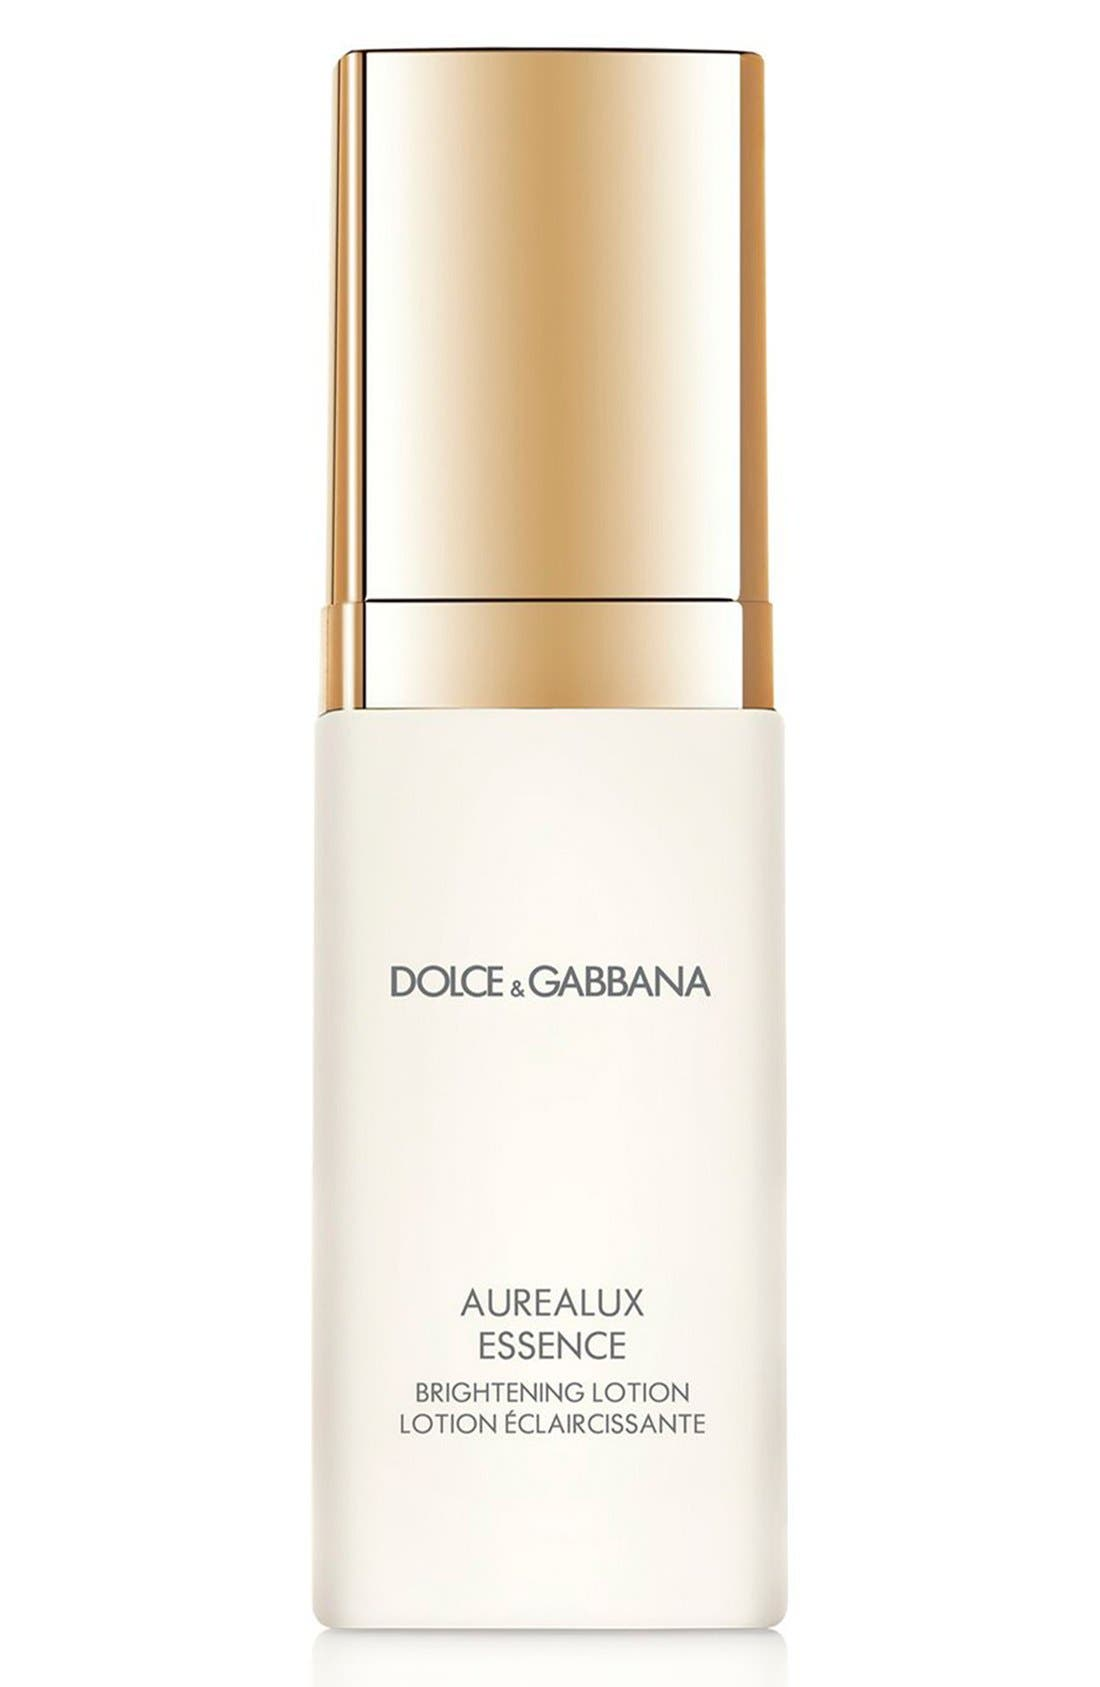 Dolce&Gabbana Beauty 'Aurealux' Essence Brightening Lotion,                         Main,                         color, 000